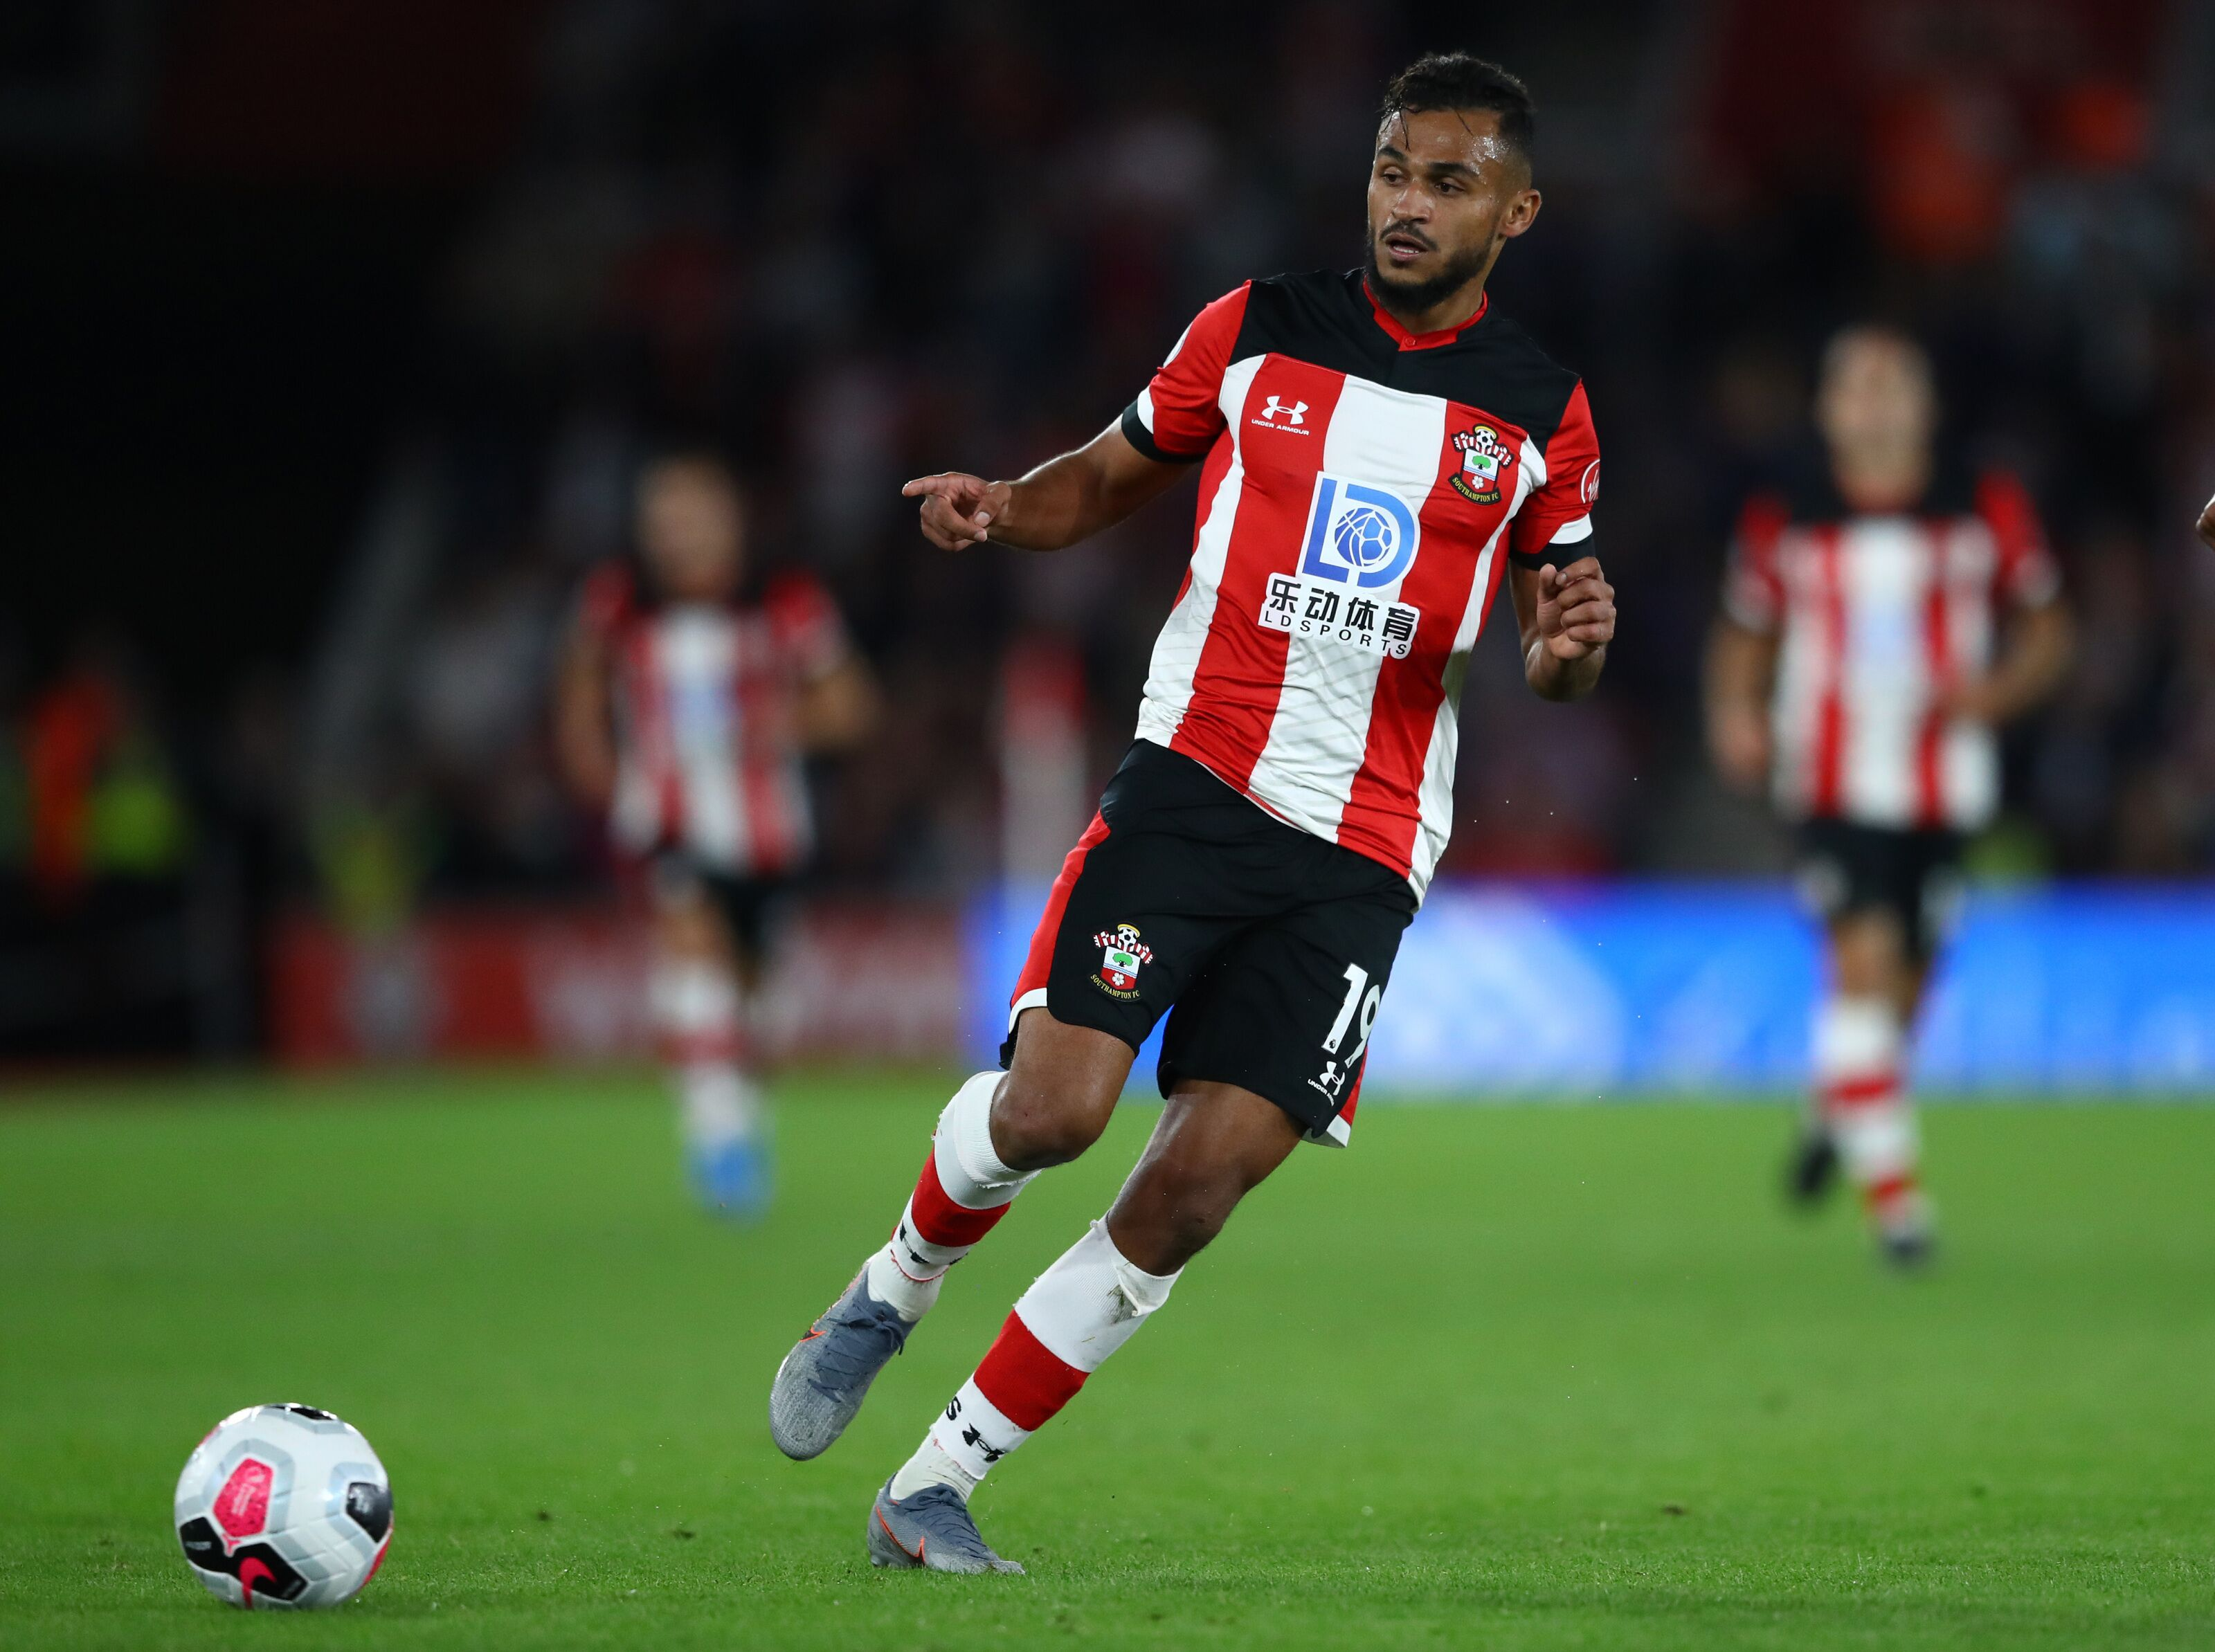 Southampton: Boufal has proved many Saints fans right – and many wrong